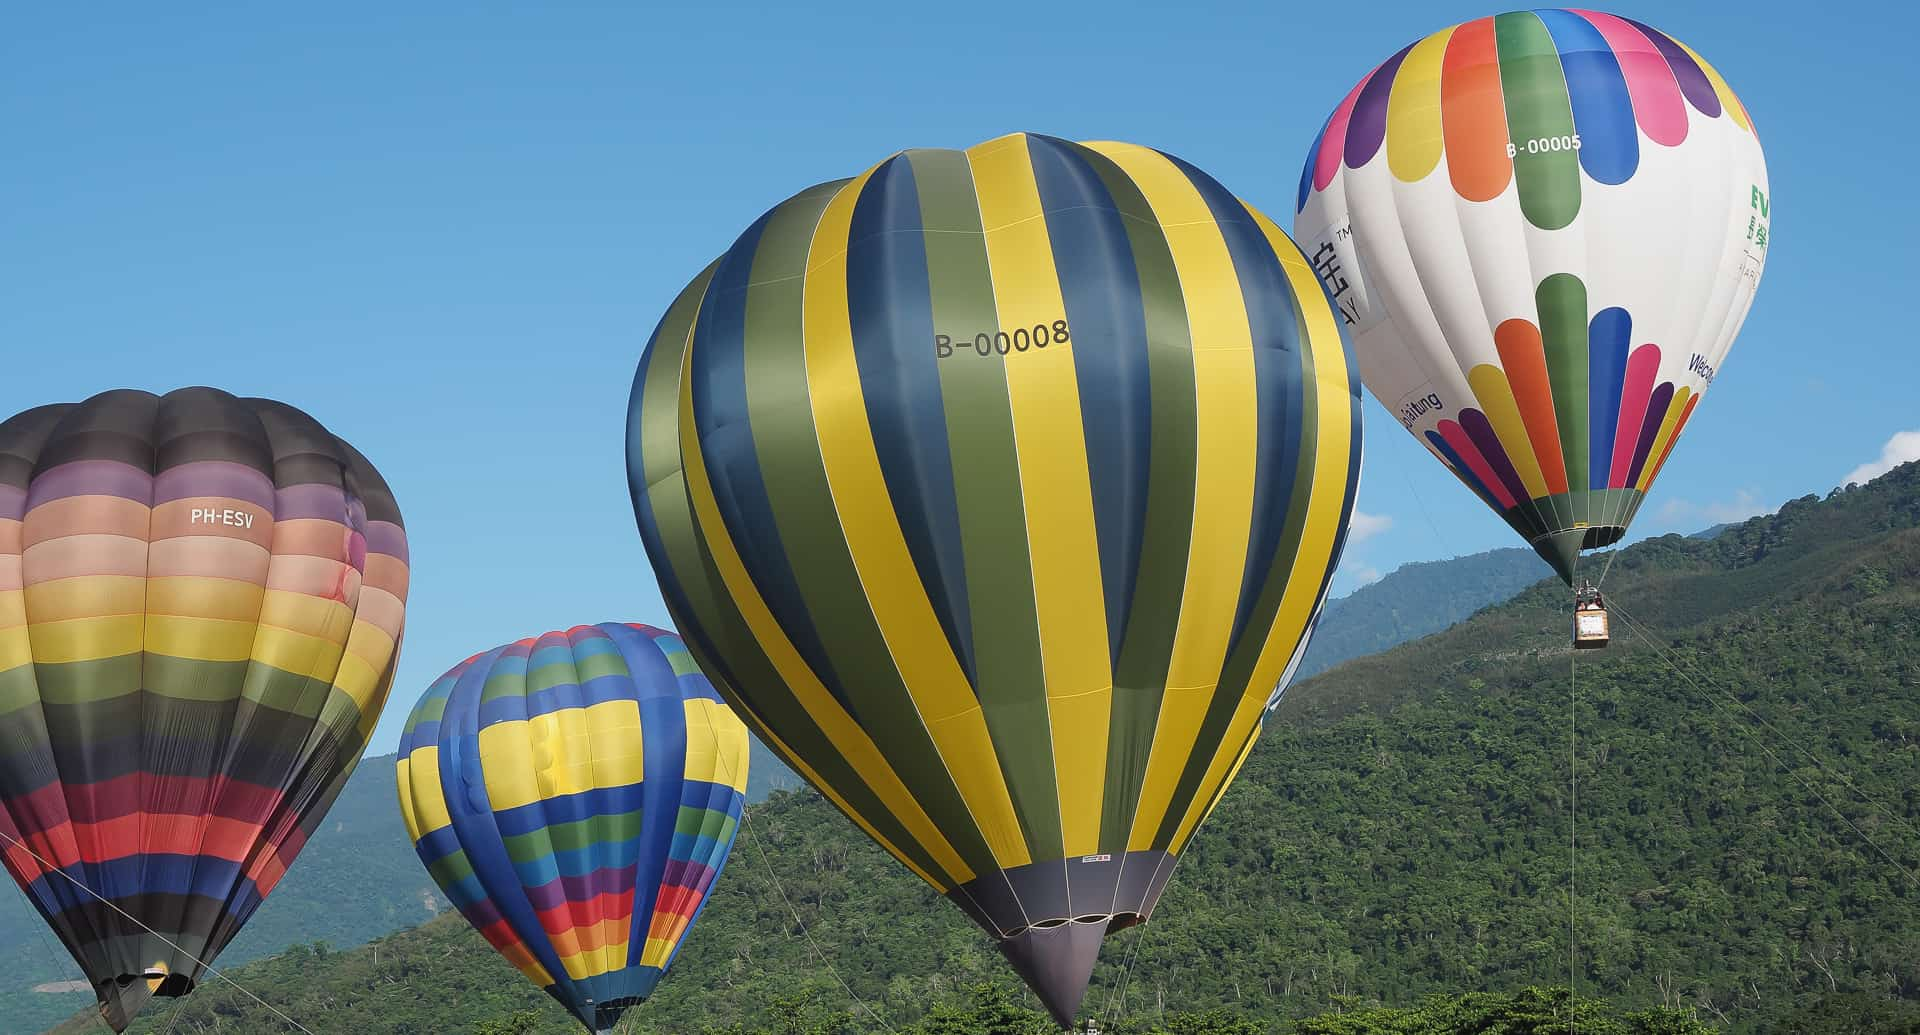 Hot air ballooning, one of the best things to do in in Taiwan!